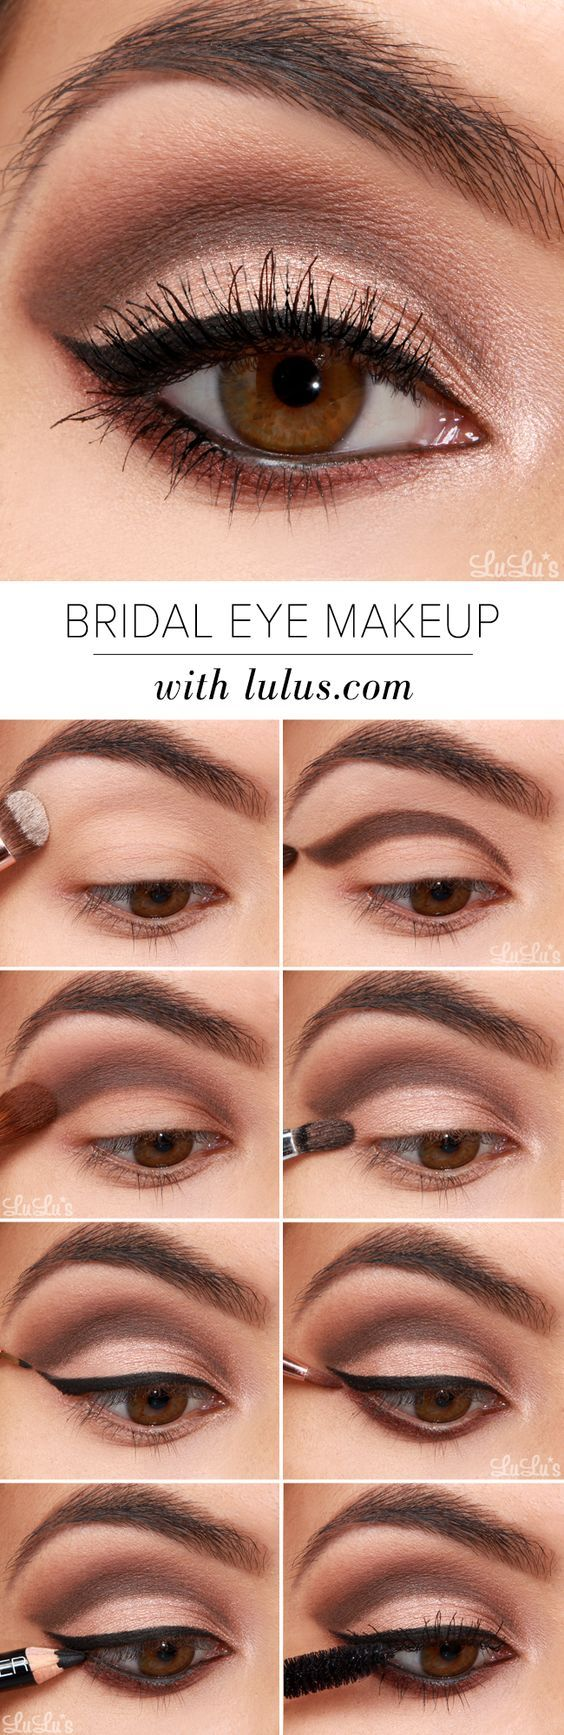 best make up u fashion tips images on pinterest hair beauty